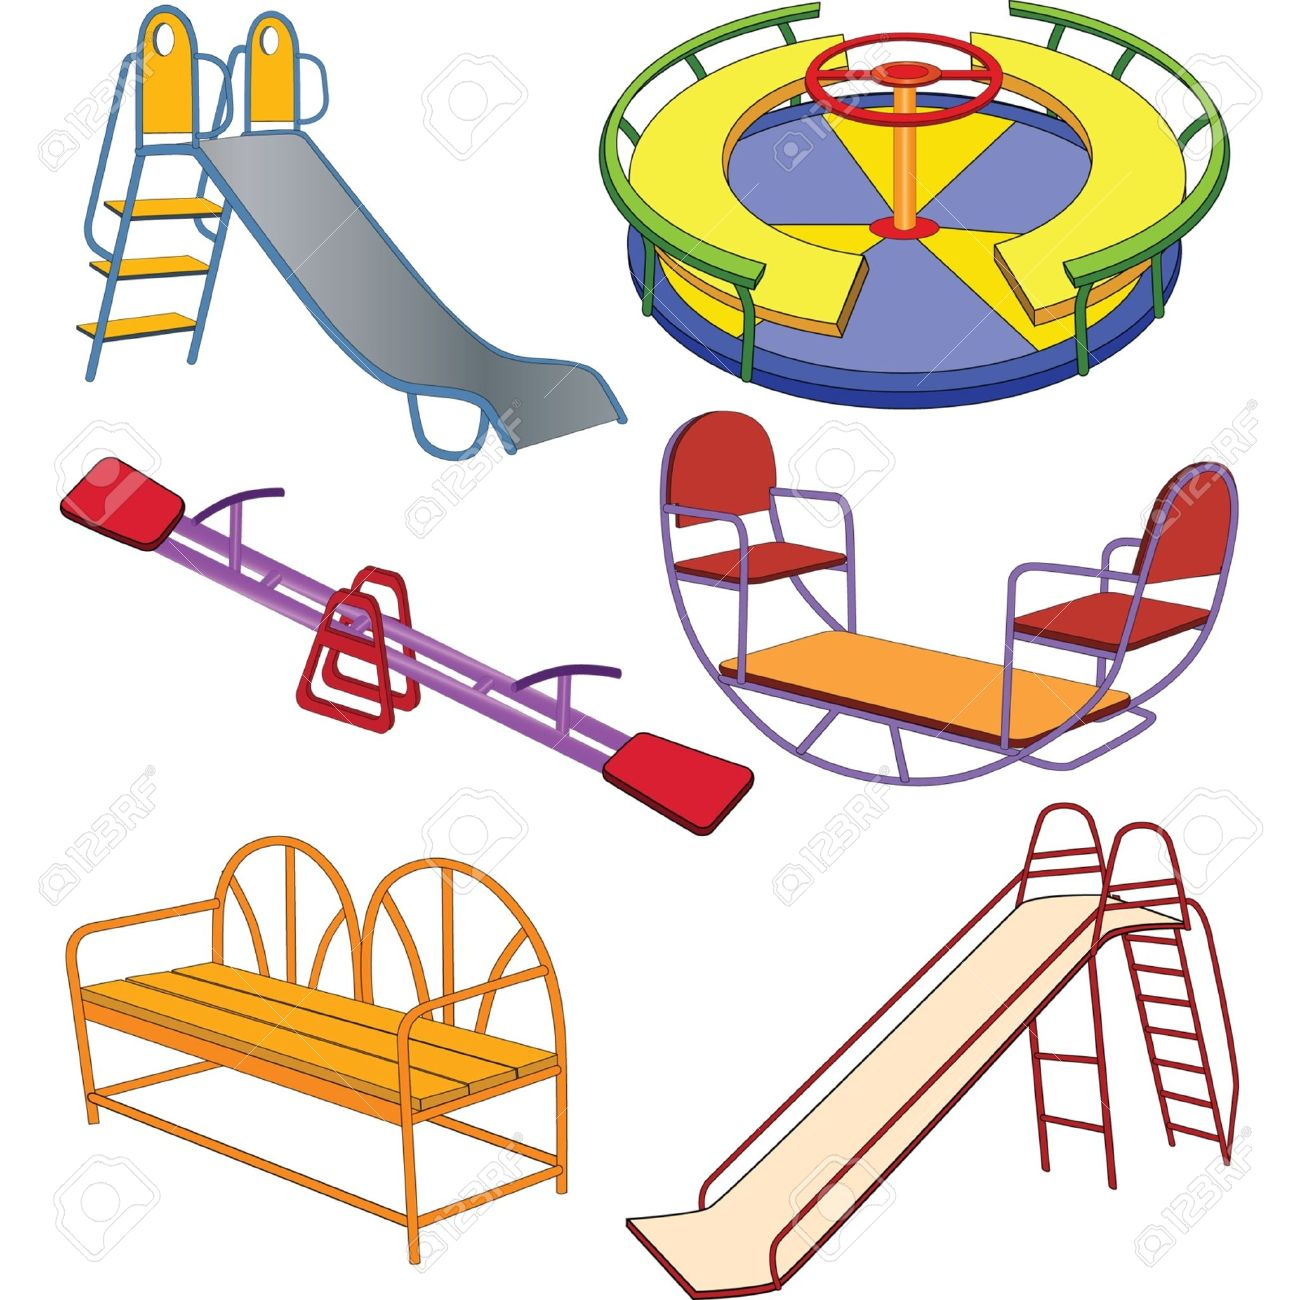 Swing Clip Art Free | Clipart Panda - Free Clipart Images